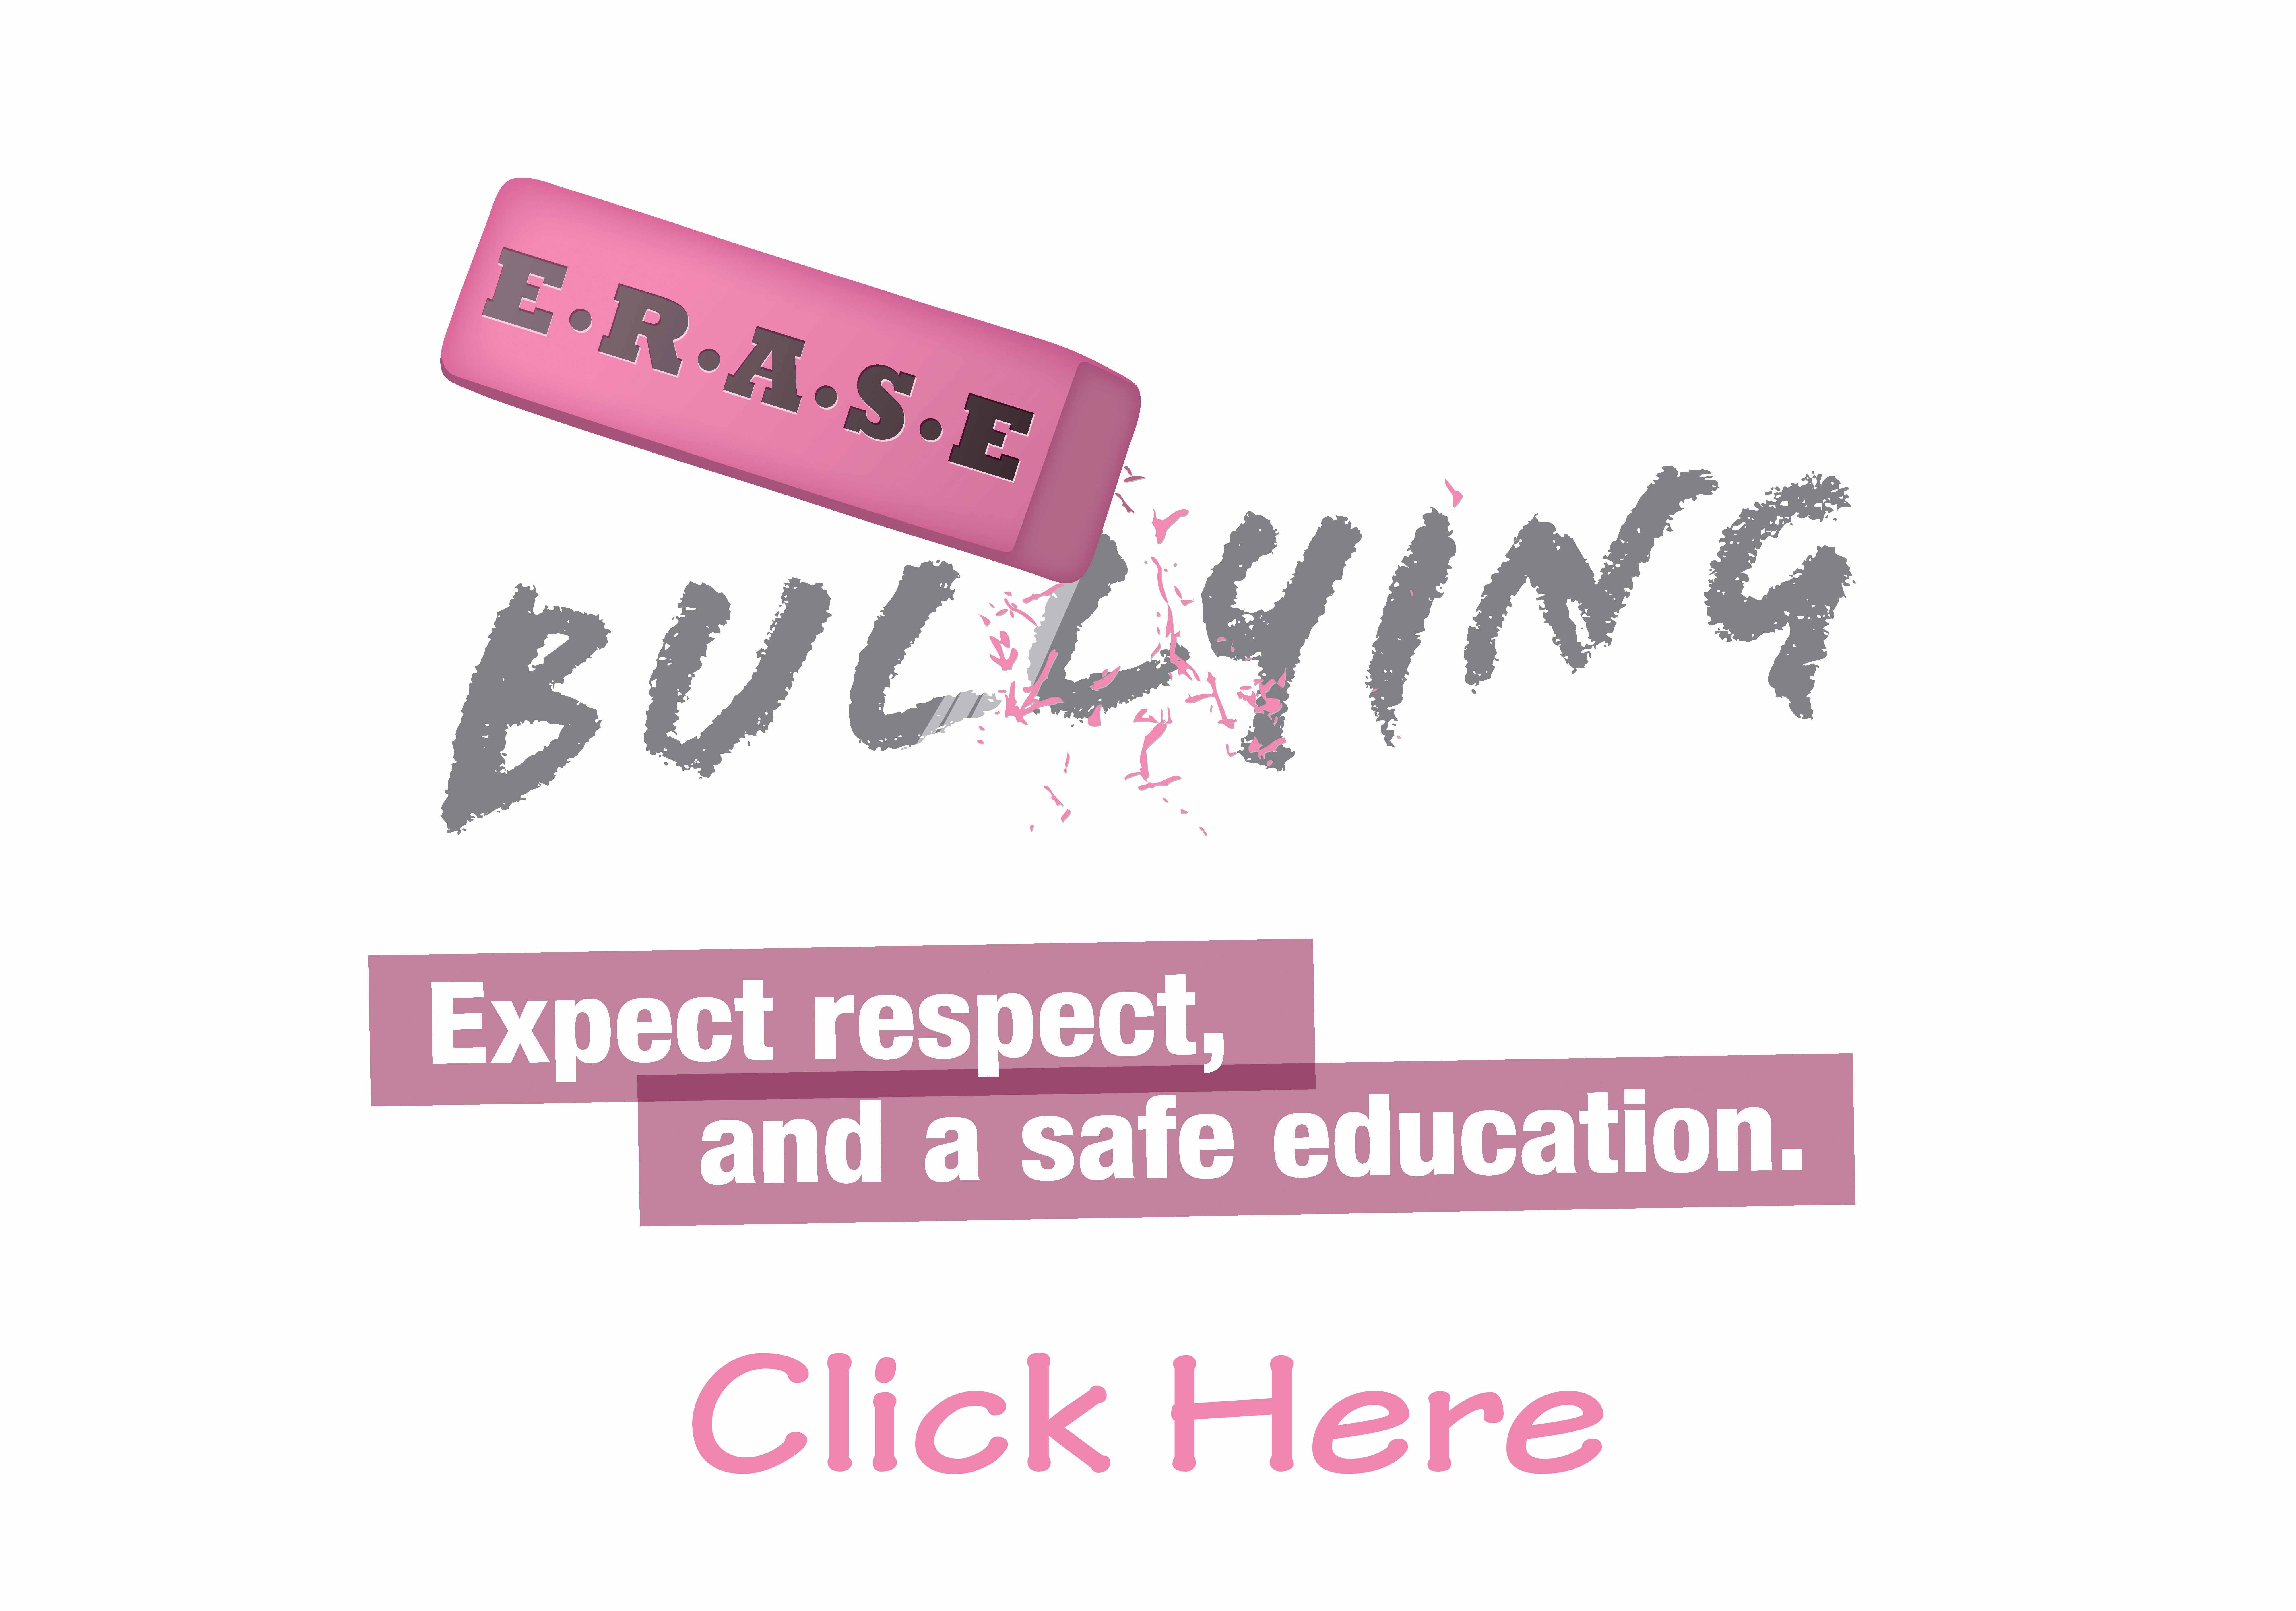 EraseBullying.ca